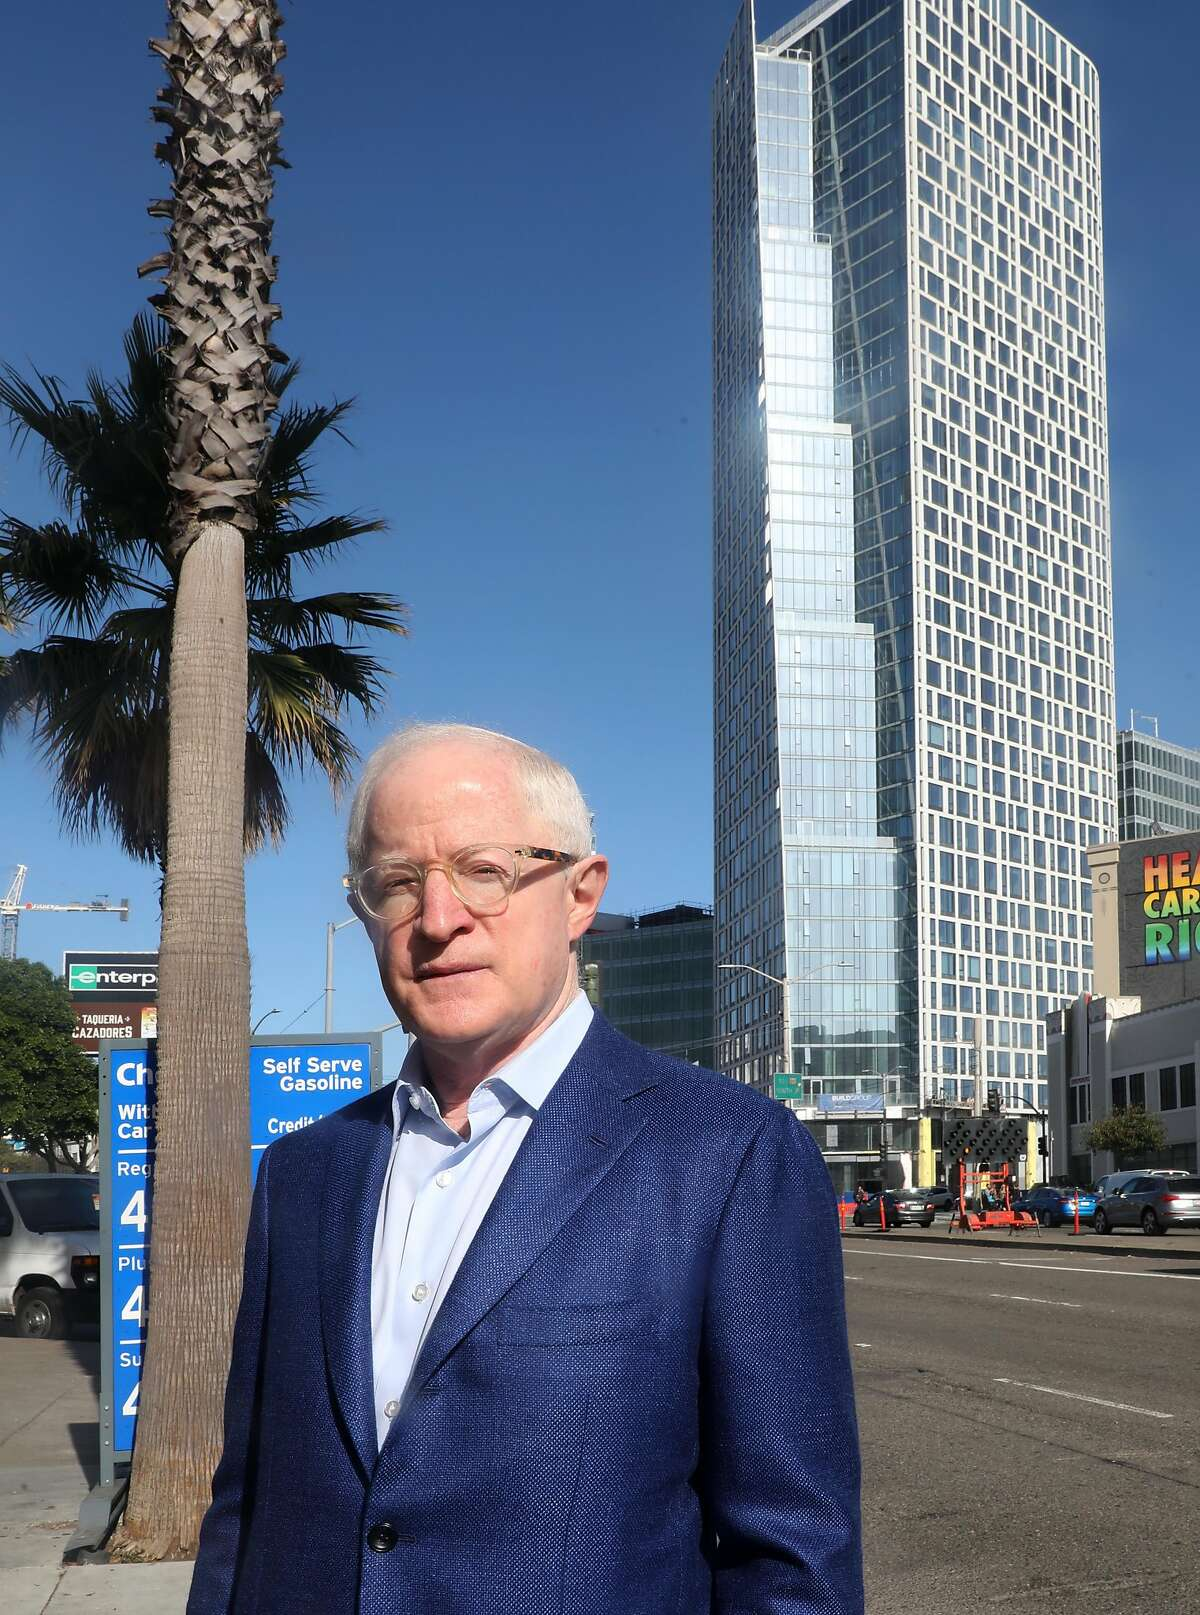 Chairman and chief executive officer Bill Witte of Related California shows his newest project at 1500 Mission St. (tower behind him) on Tuesday, Nov. 19, 2019, in San Francisco, Calif.